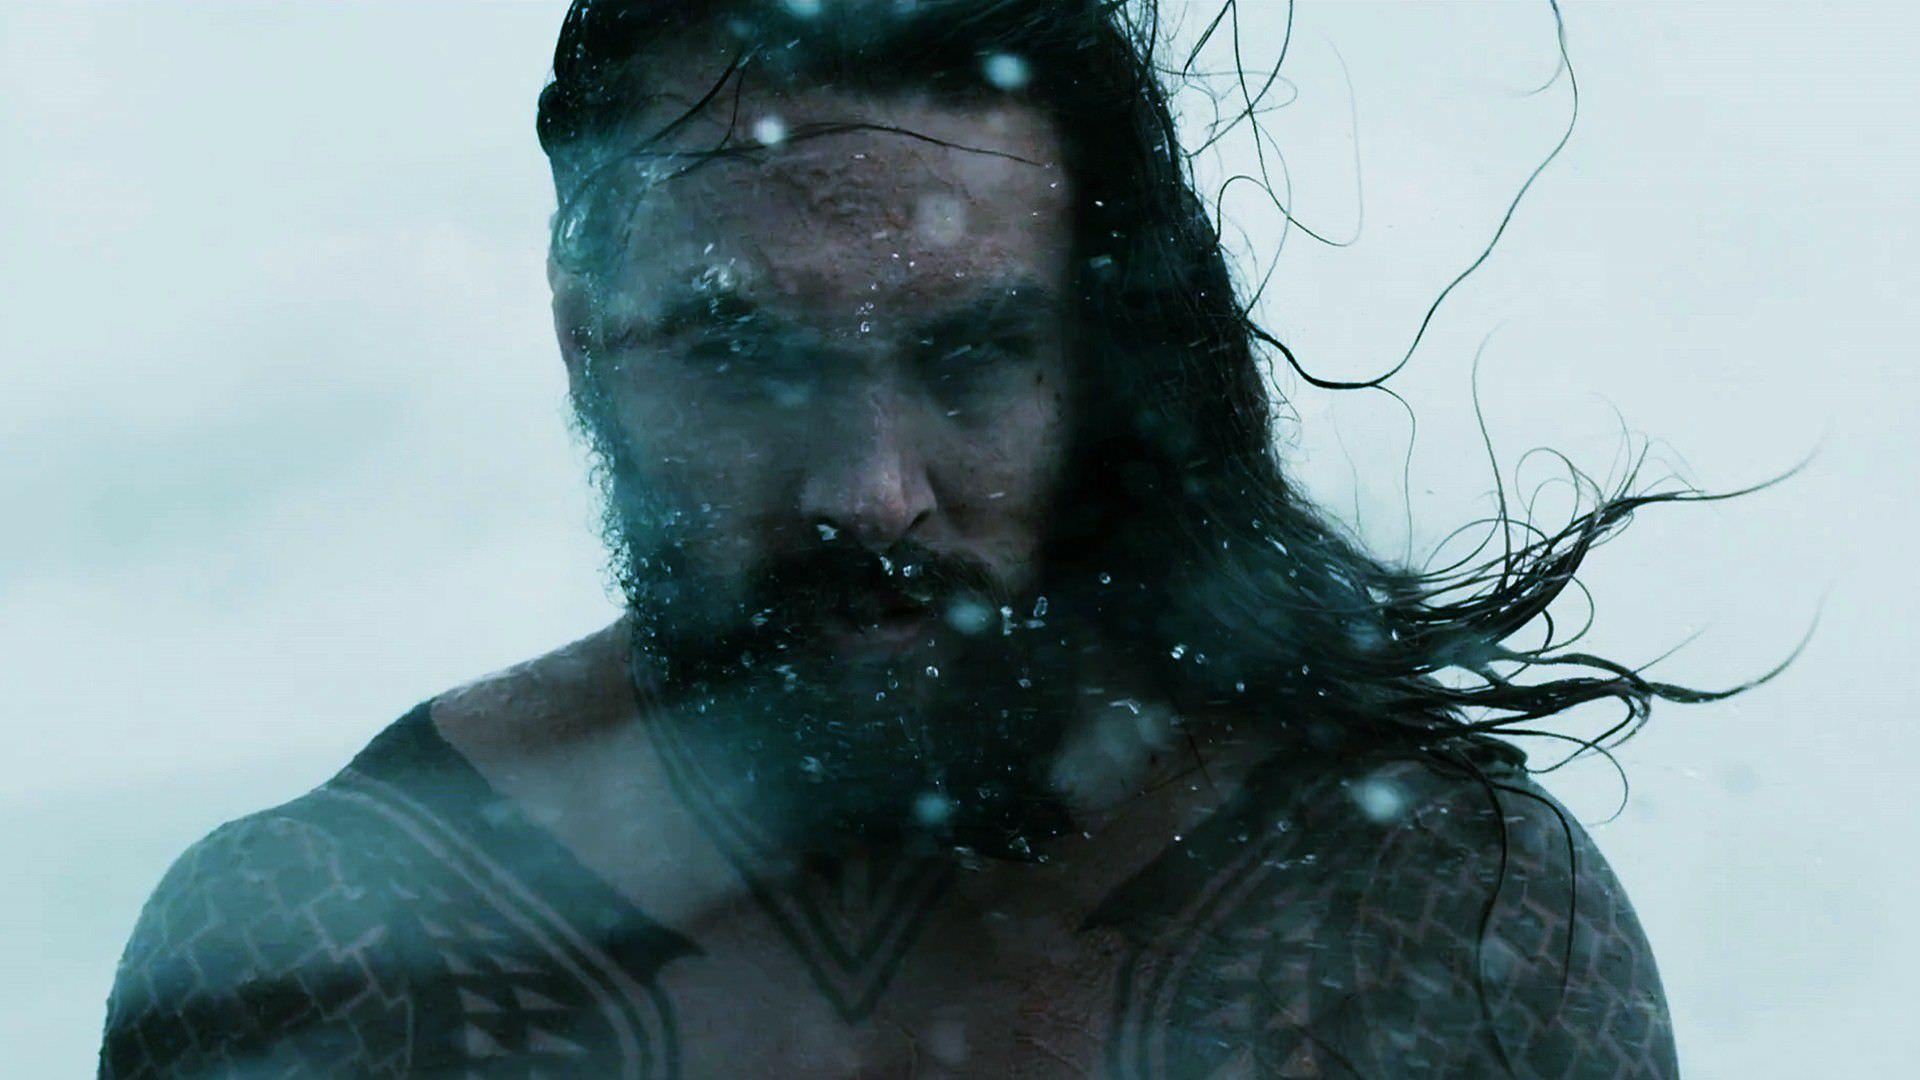 Aquaman Justice League HD Wallpapers Wallpapers